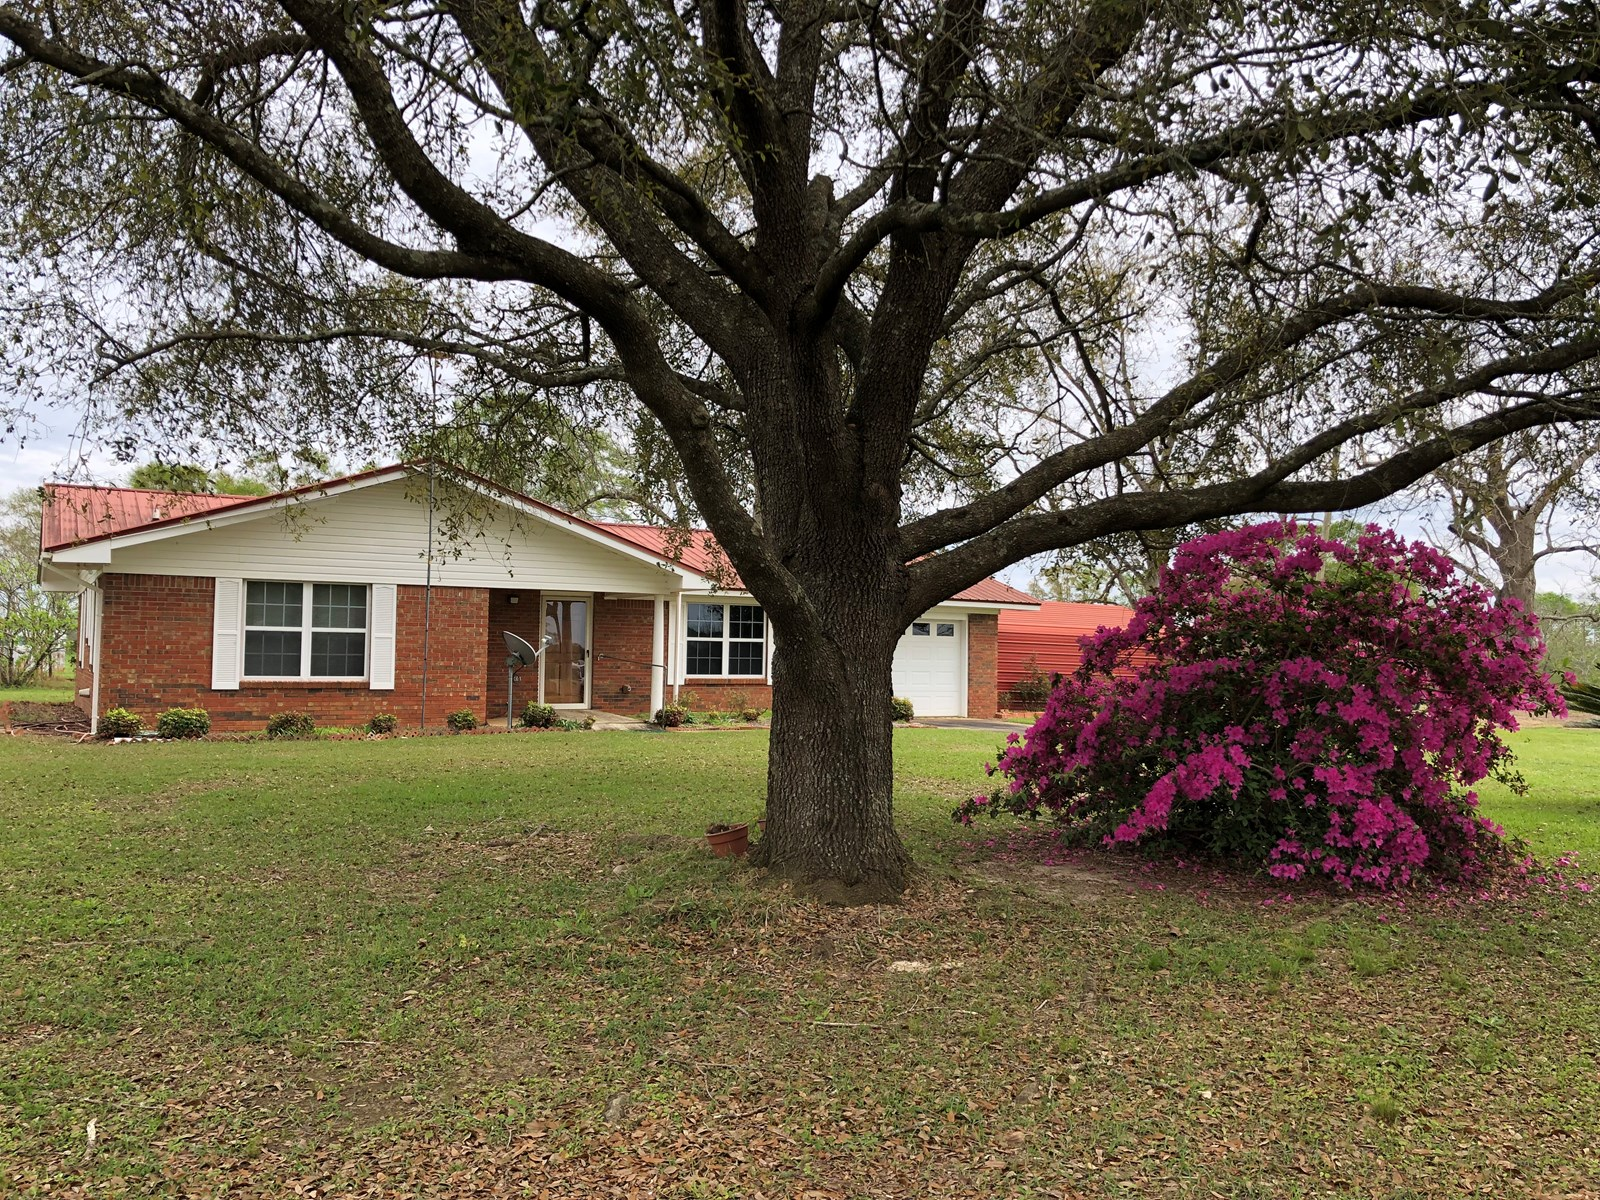 3B/2B BRICK HOME ON 3 ACRES FOR SALE SLOCOMB, AL CO RD 49 S